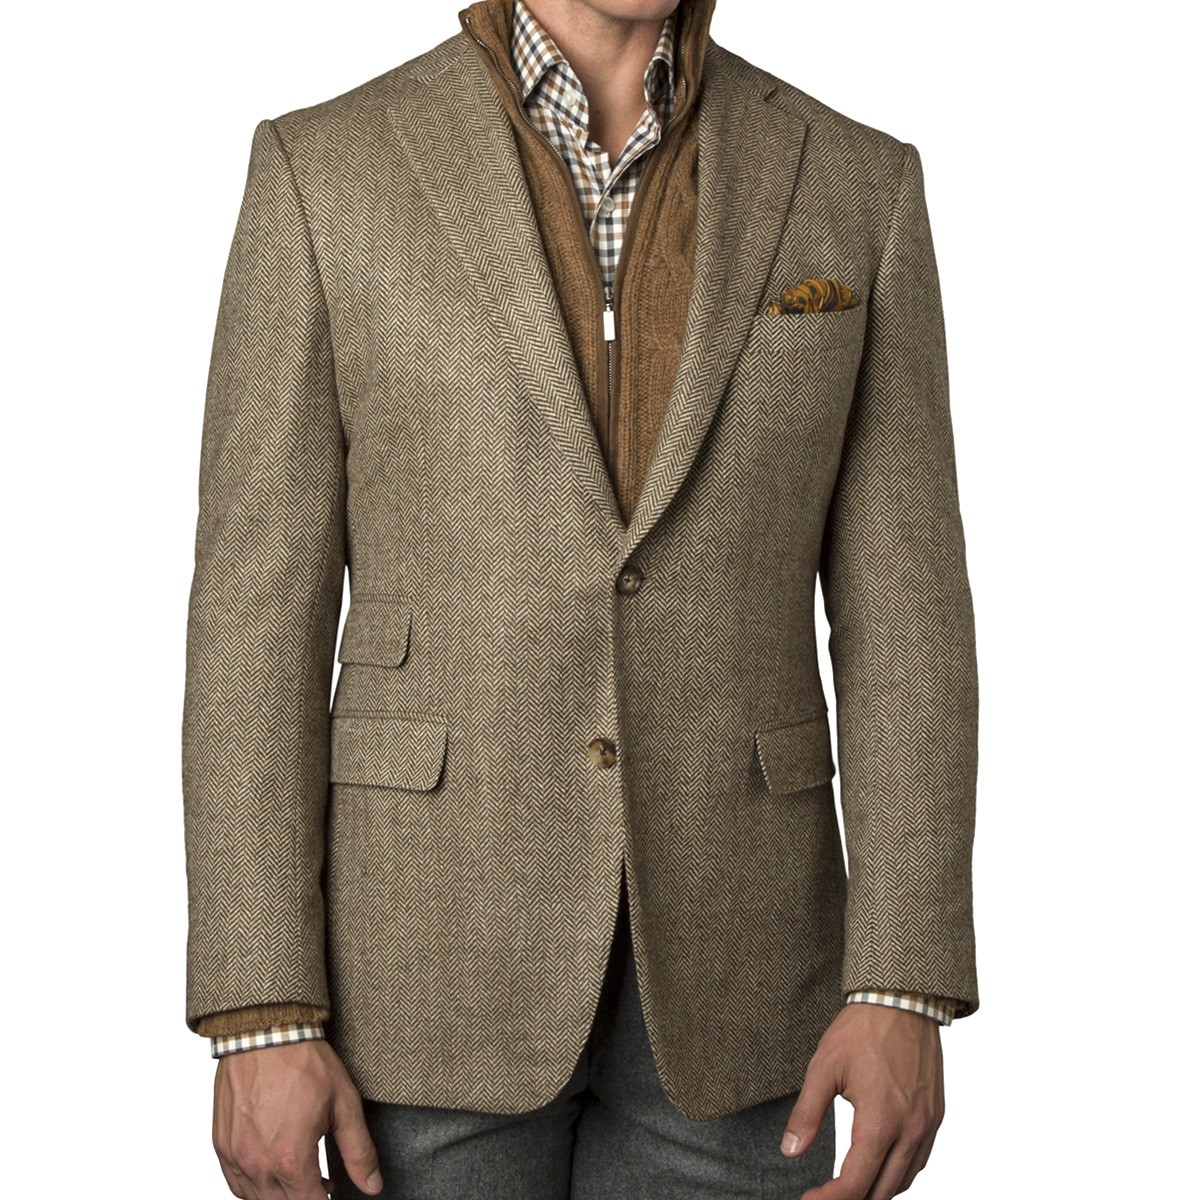 Sears has men's blazers for a day at the office or a night out on the town. Add timeless sophistication to your wardrobe with a new men's sport coat.